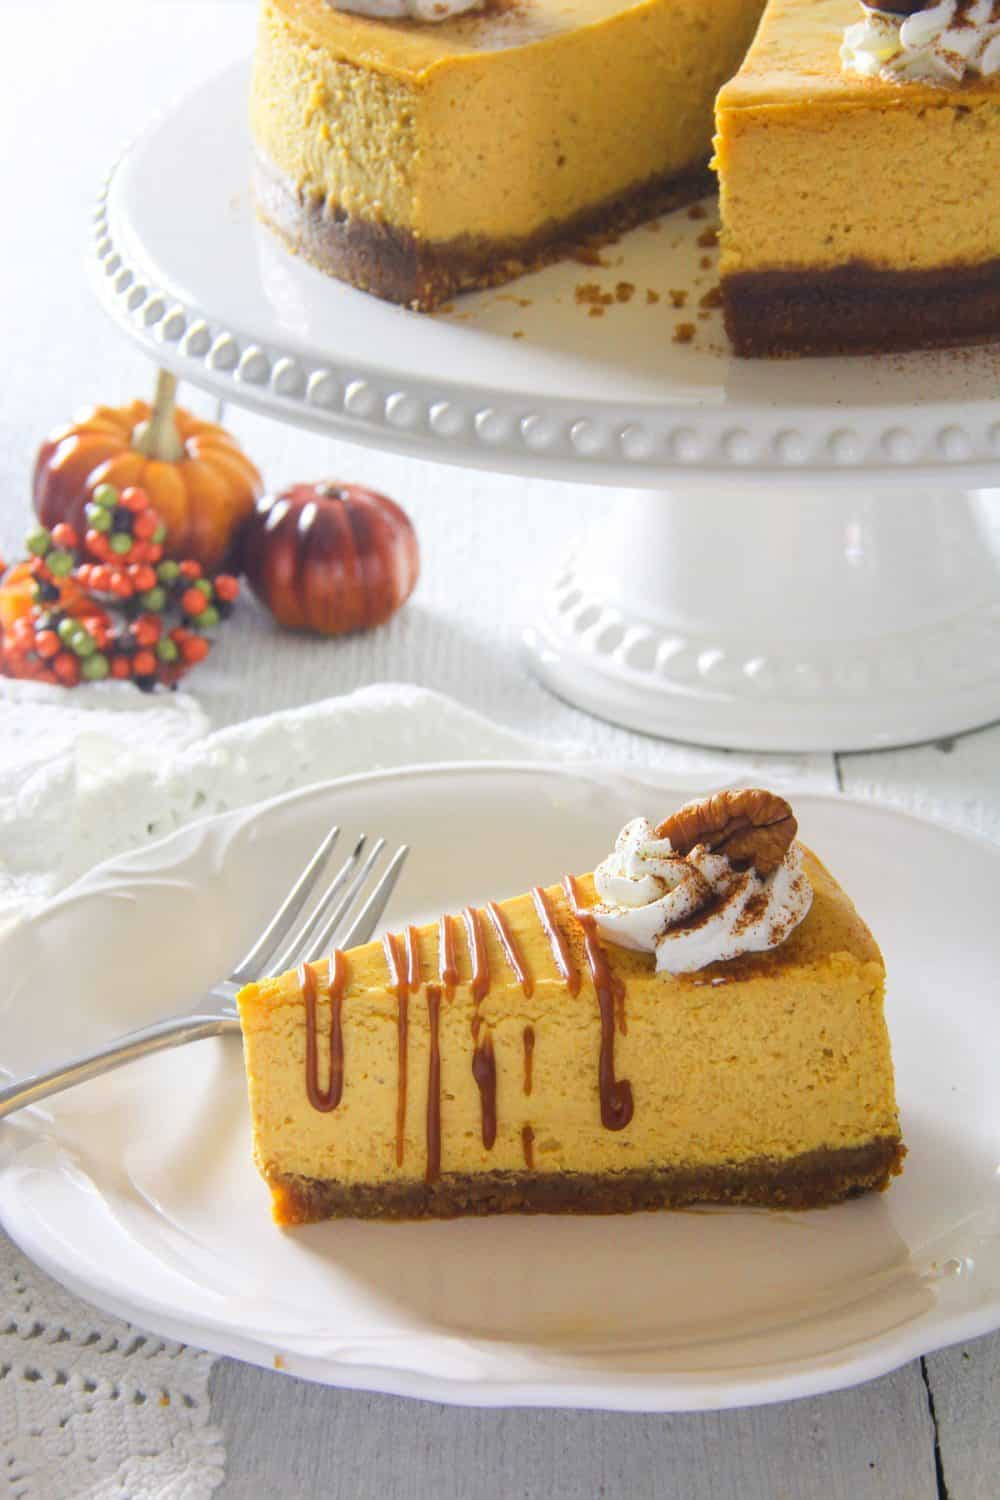 close up image of a homemade pumpkin cheesecake with whipped cream and pecan on top and small pumpkins in the background